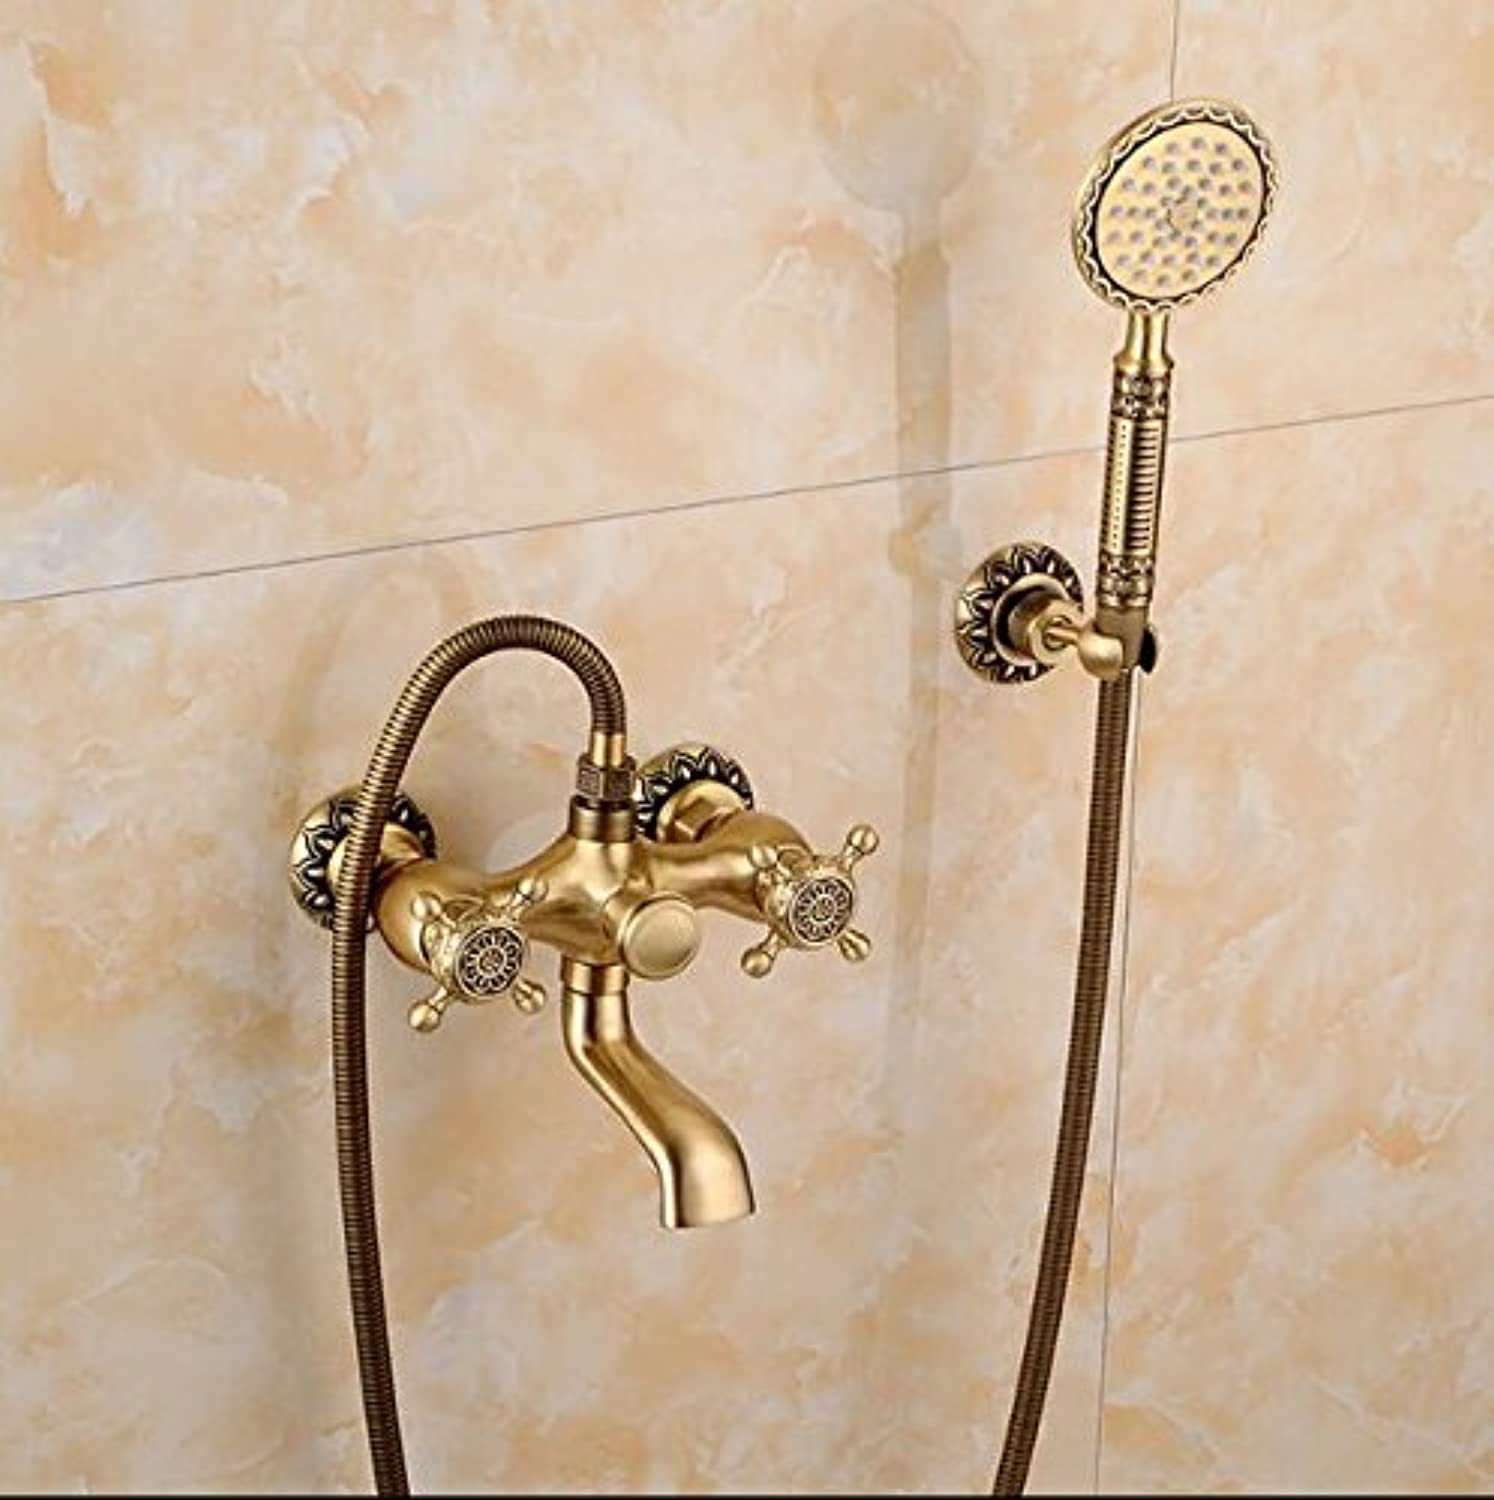 New Arrivals high quality total brass antique finished bathroom shower faucet set,bathtub faucet set with hand held shower head,style 2